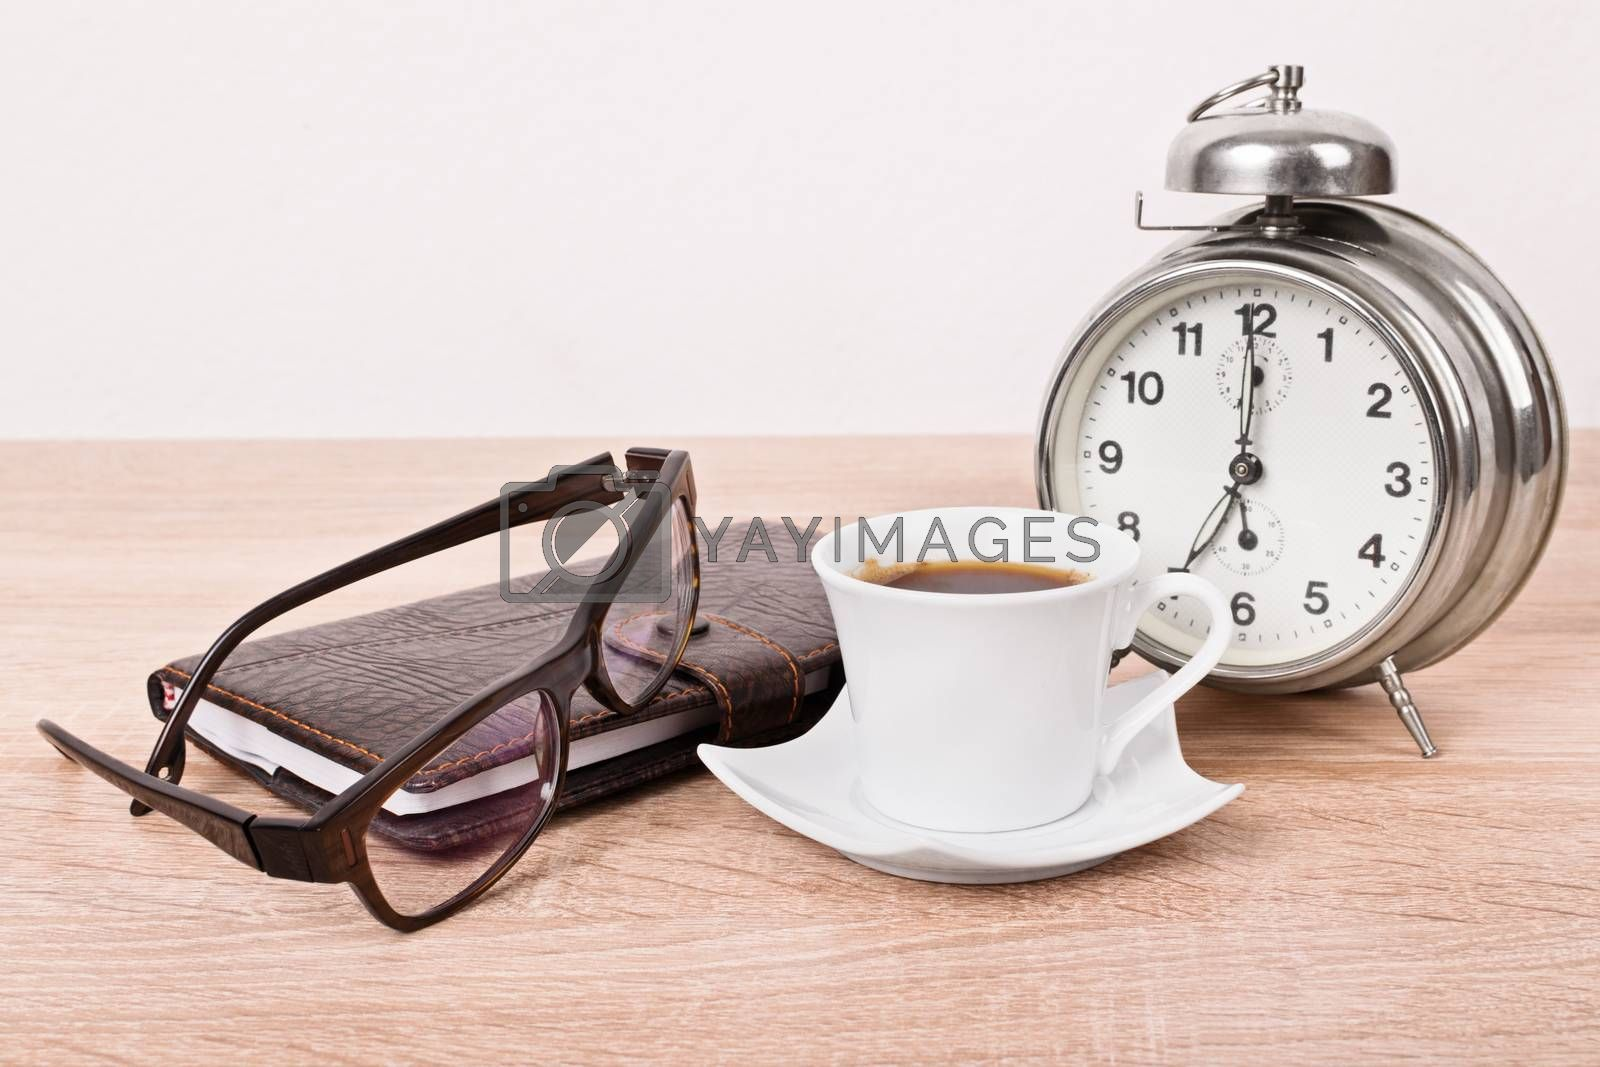 Close up of a leather covered planner notebook, glasses, alarm clock and a cup of coffee placed on a wooden table.